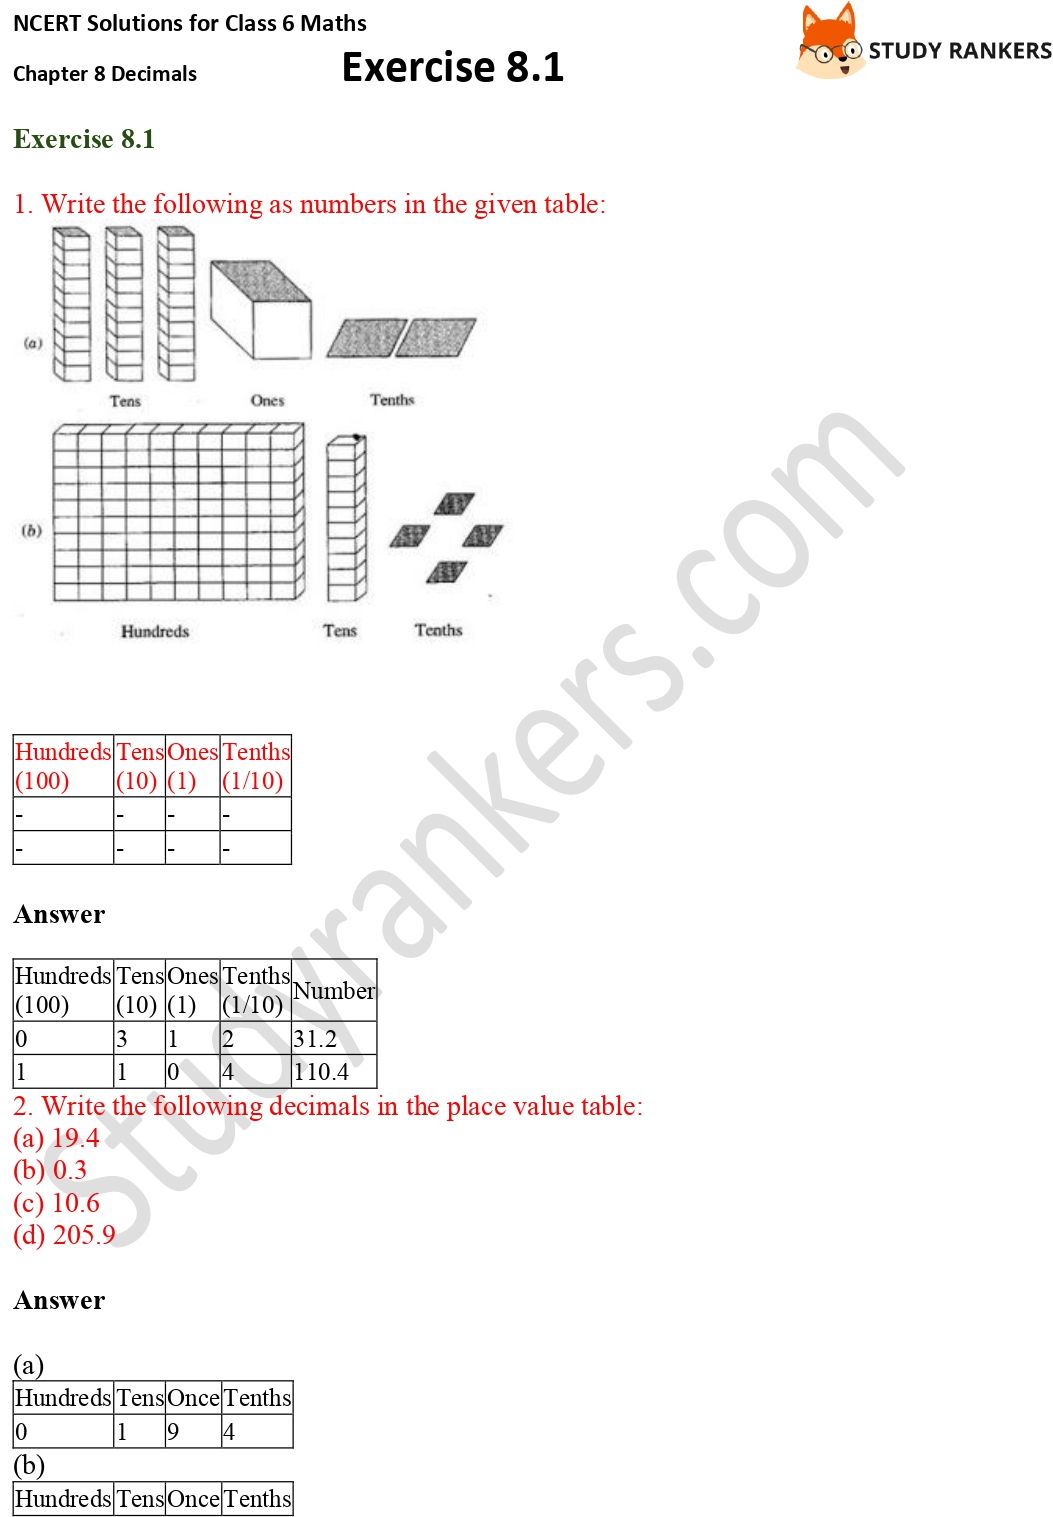 NCERT Solutions for Class 6 Maths Chapter 8 Decimals Exercise 8.1 Part 1